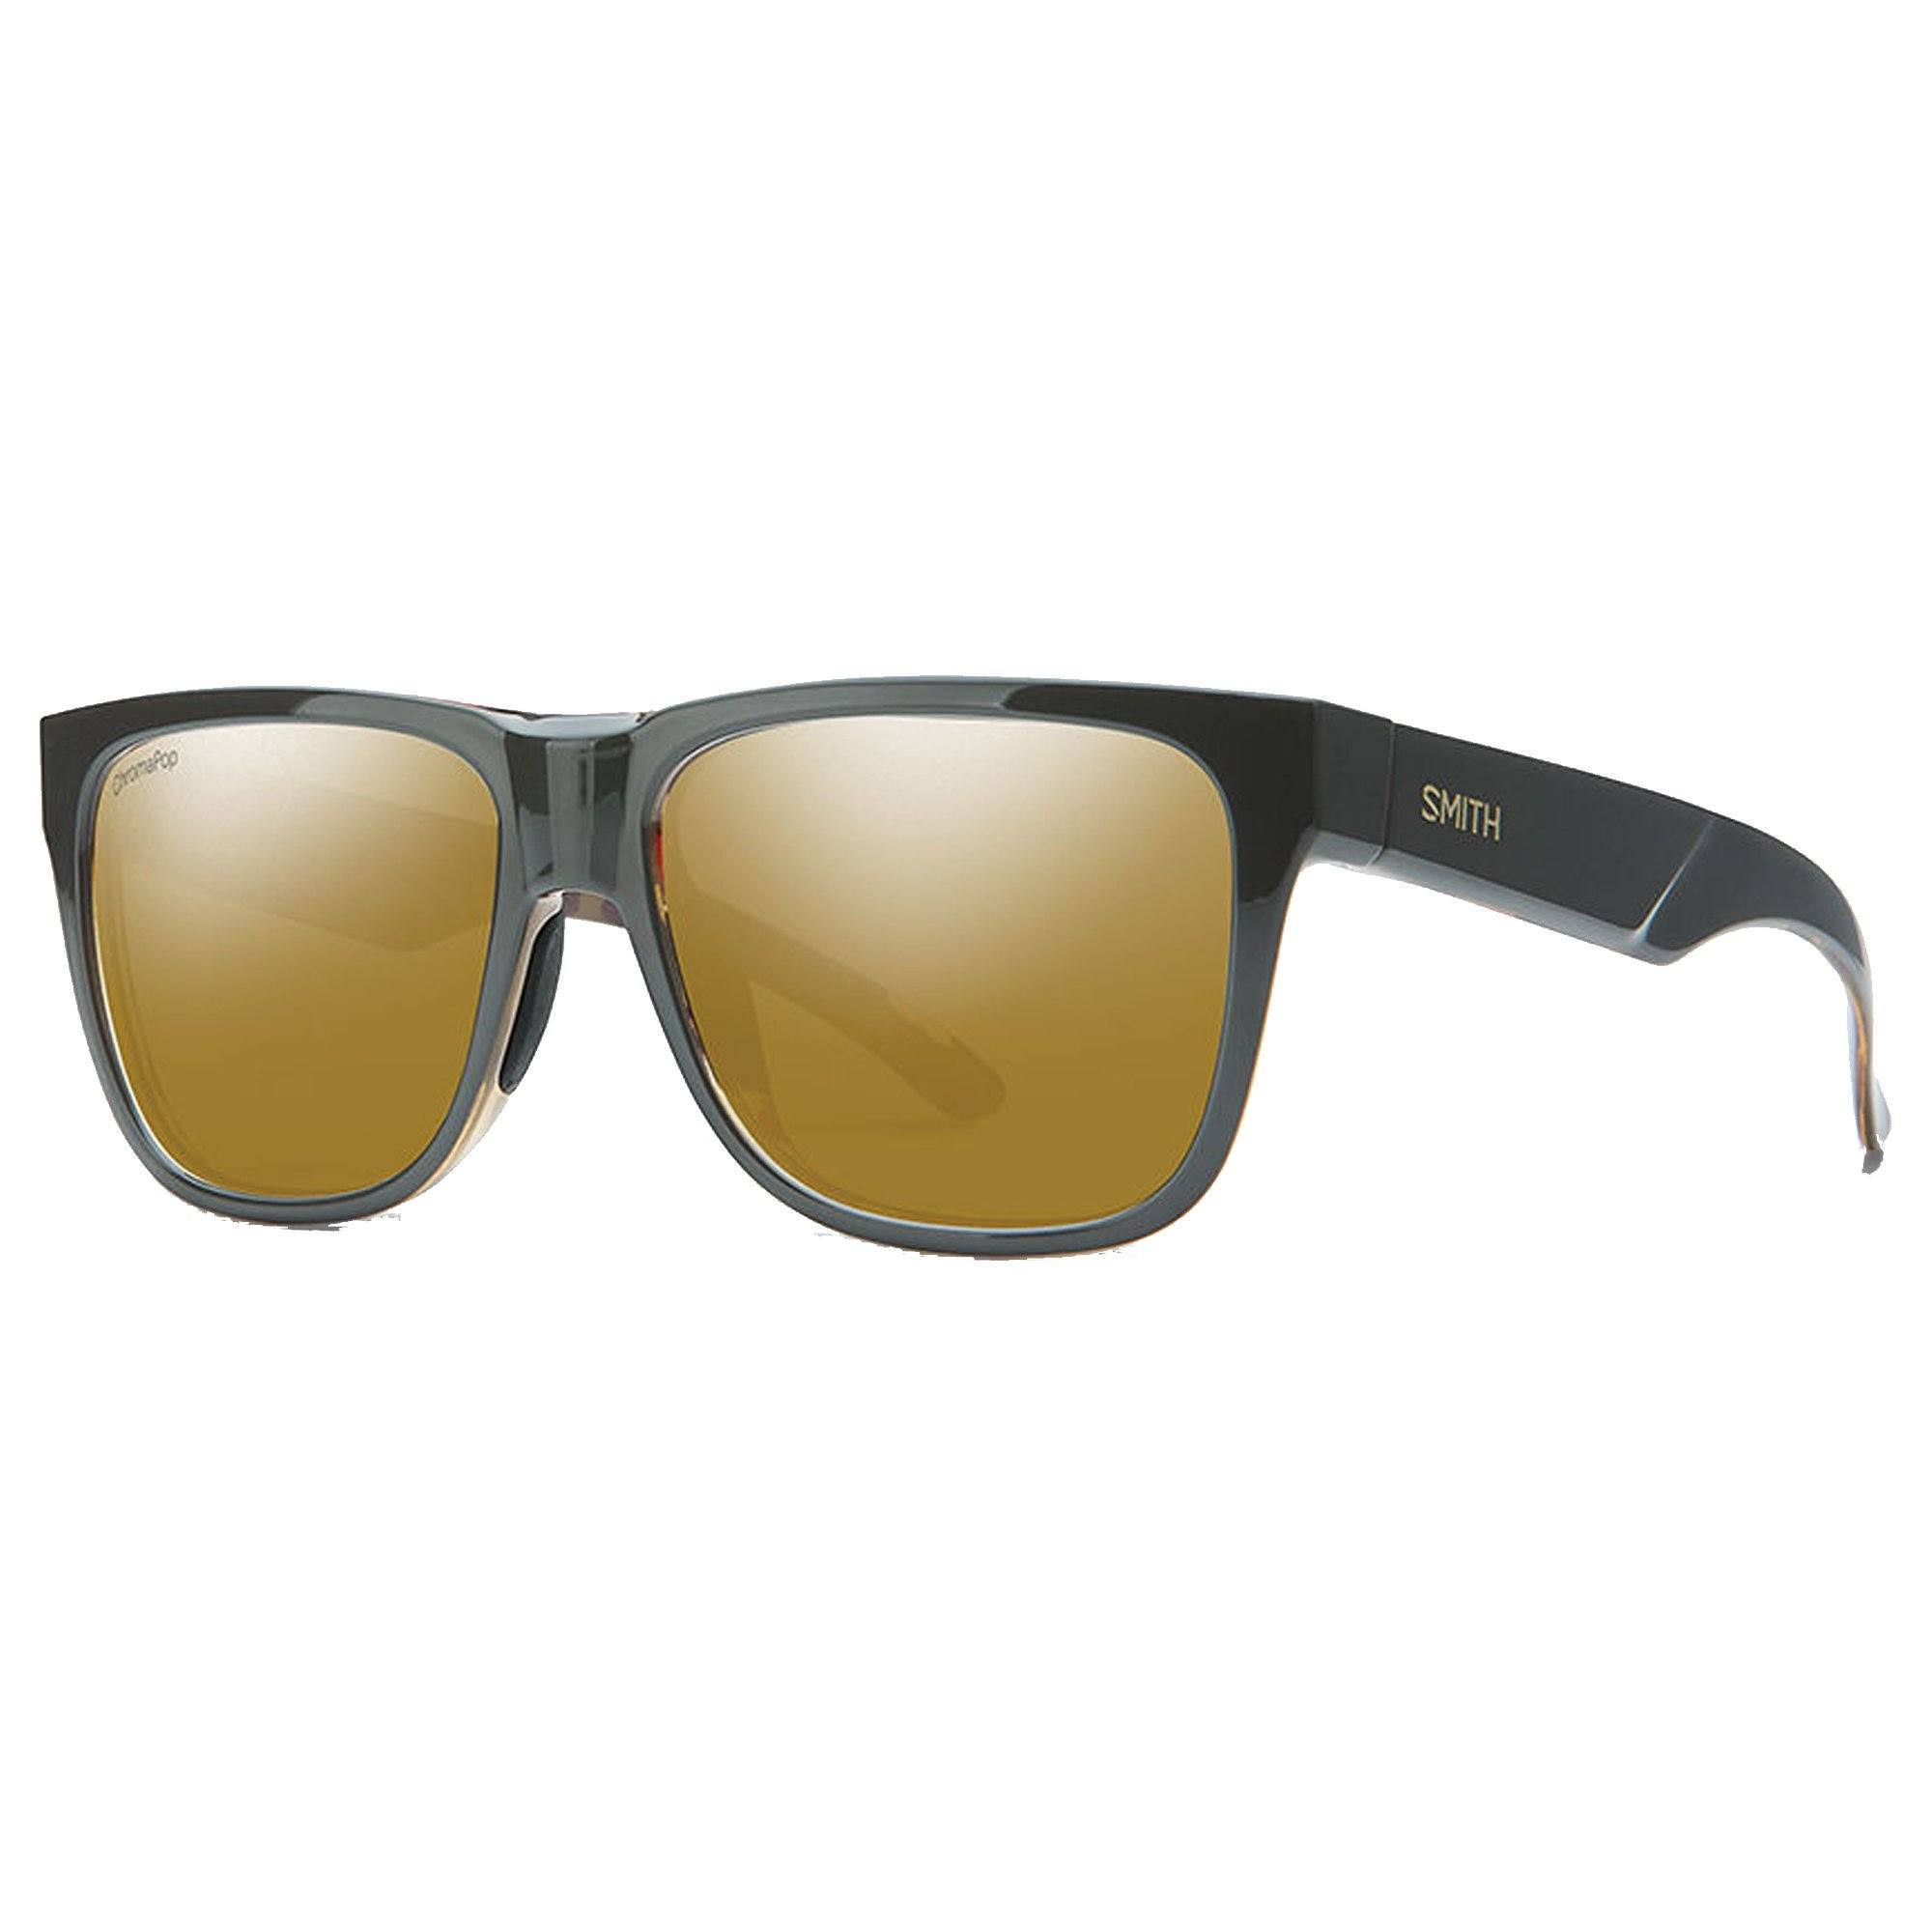 Smith Lowdown 2 Sunglasses - Polarized Chromapop - Gravy Tortoise Bronze Mirror